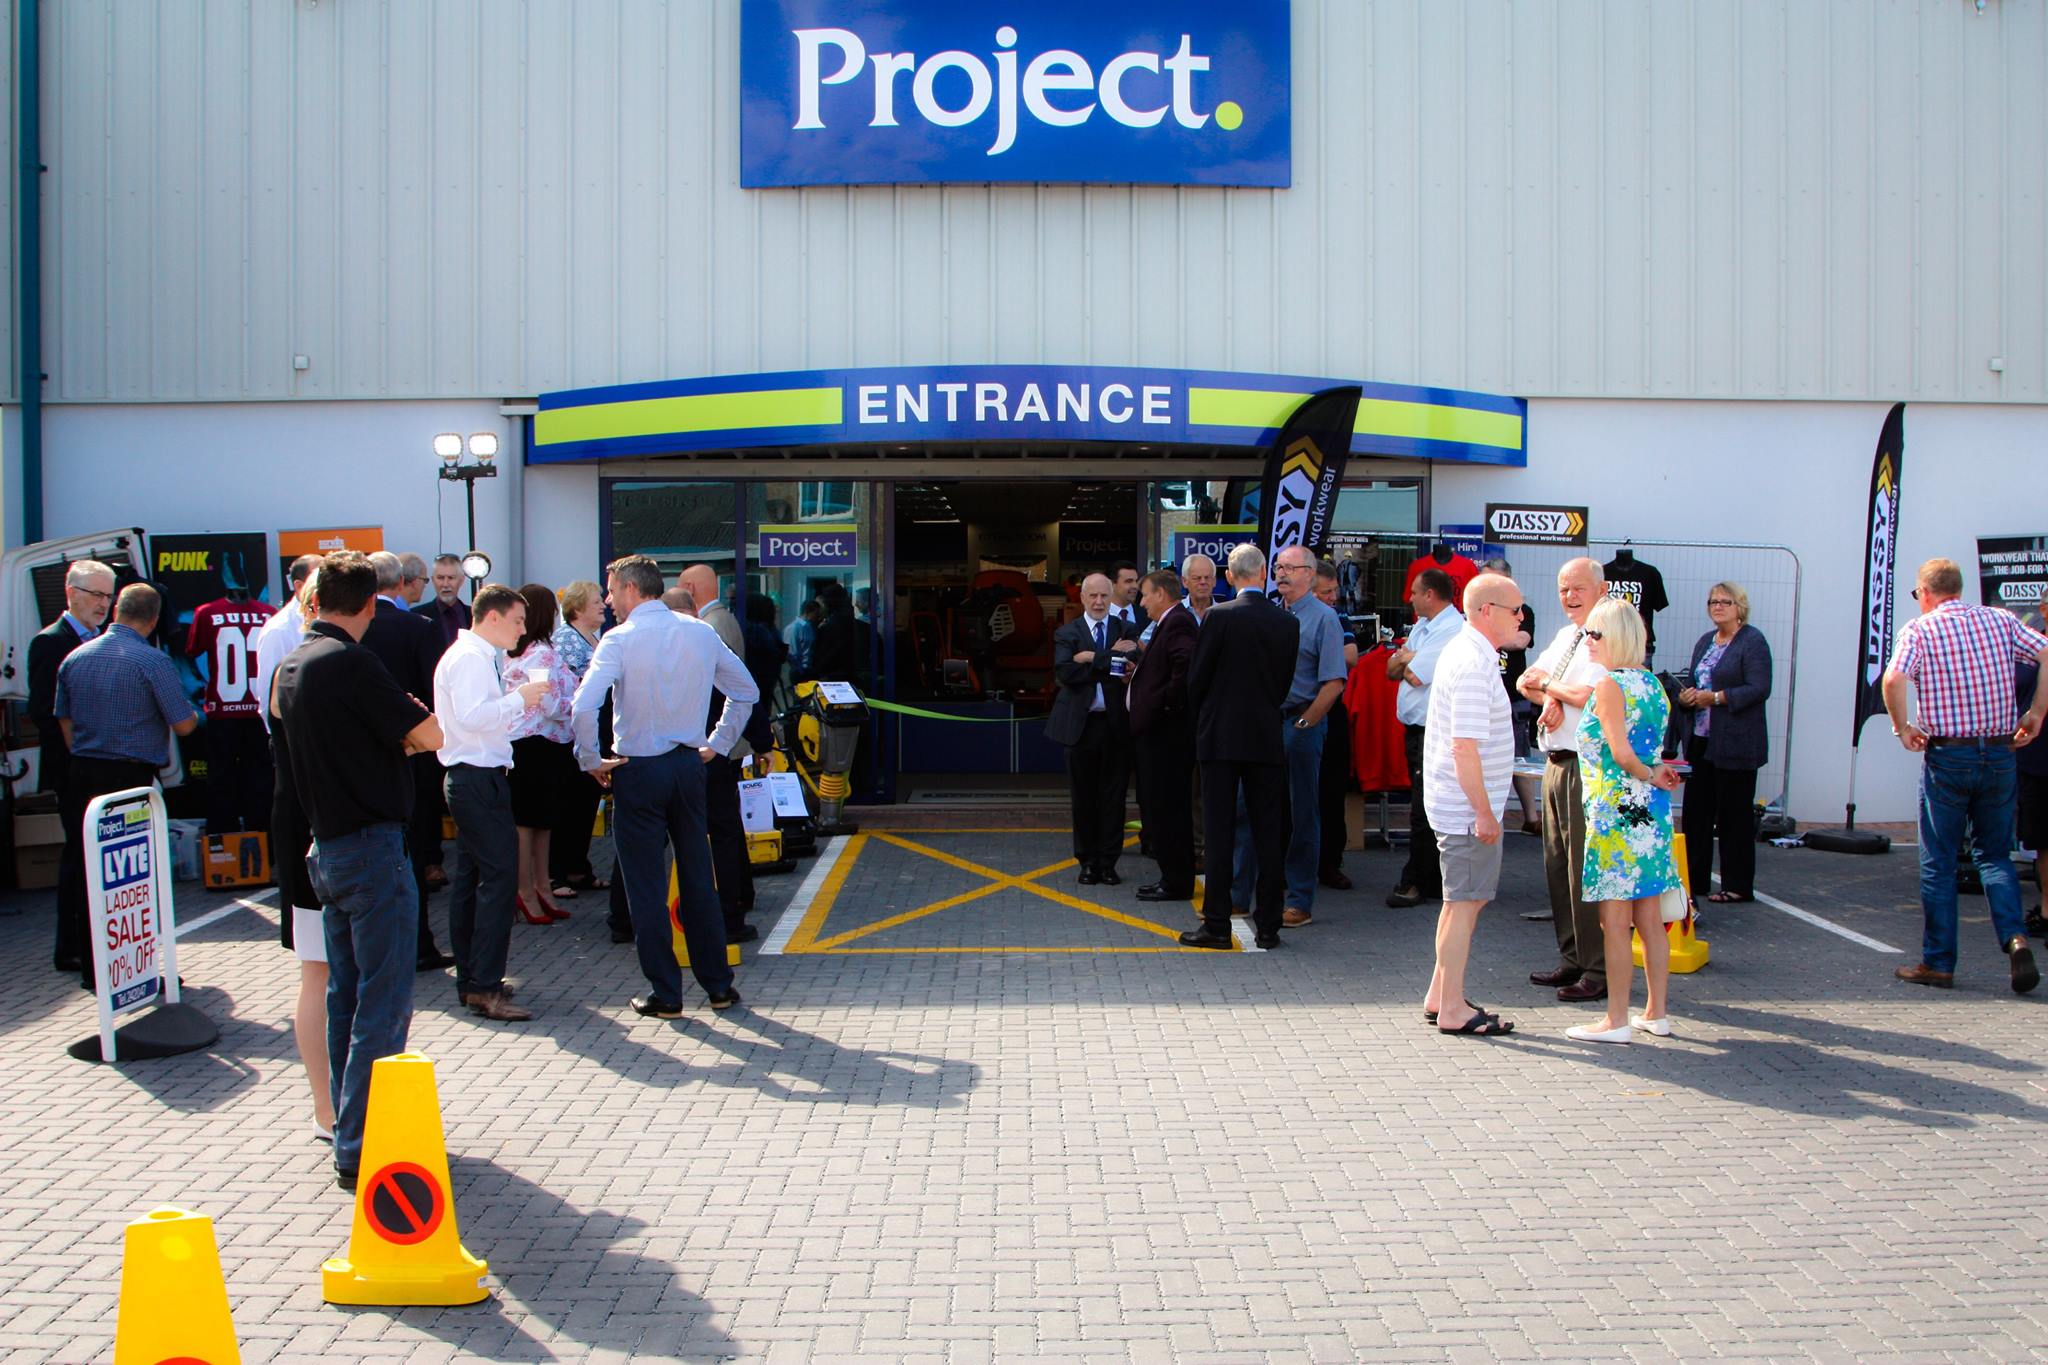 Project Hire celebrates its grand opening